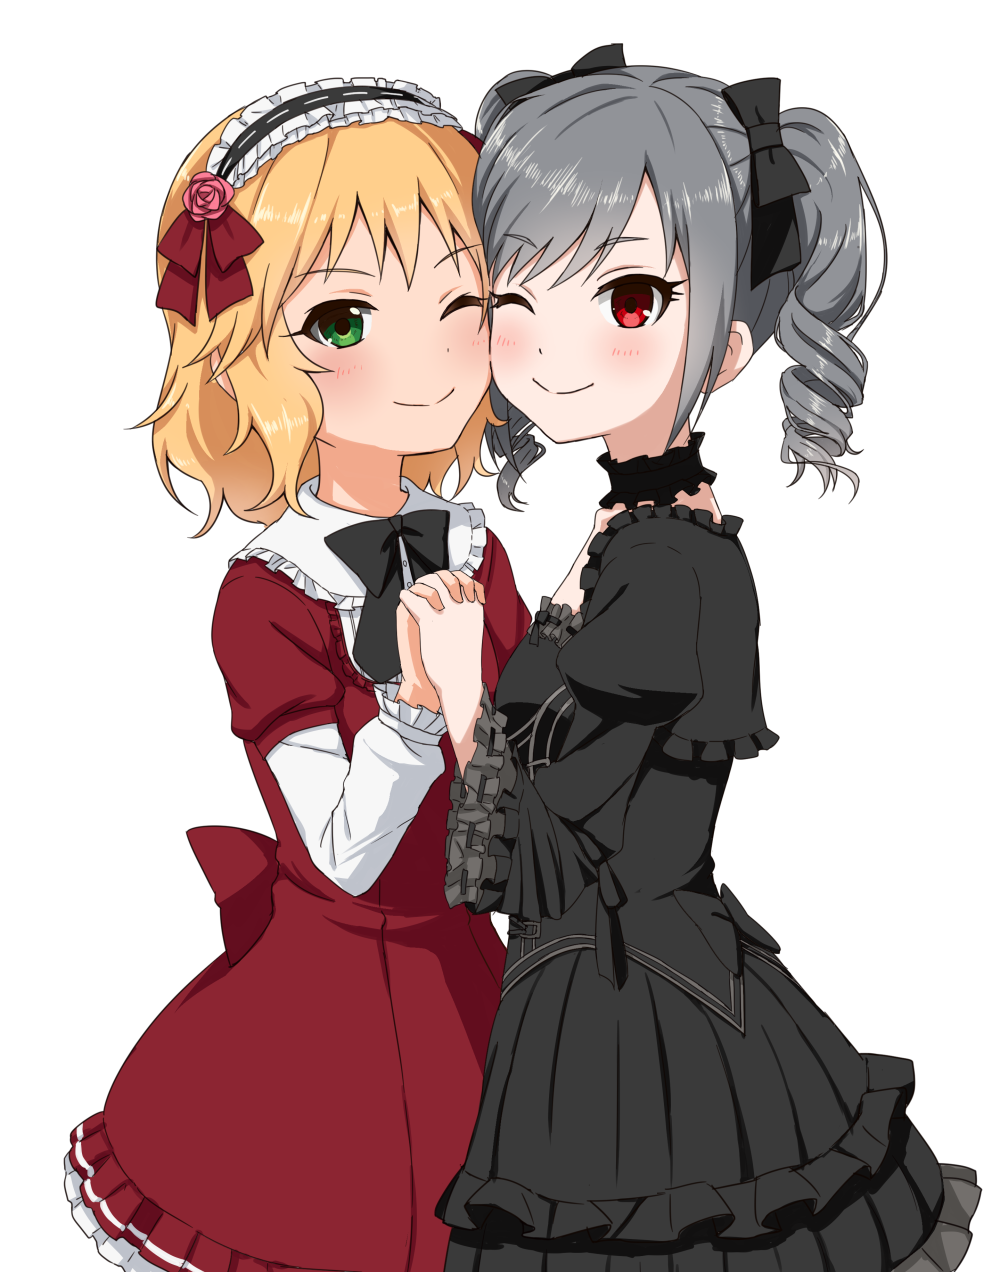 2girls ;) bangs black_bow black_dress black_neckwear blonde_hair blush bow bowtie breasts cheek-to-cheek closed_mouth dress drill_hair eyebrows_visible_through_hair flower frilled_dress frilled_hairband frilled_shirt_collar frilled_sleeves frills green_eyes grey_hair hair_bow hair_ribbon hairband hand_holding highres idolmaster idolmaster_cinderella_girls interlocked_fingers juliet_sleeves kanzaki_ranko layered_dress layered_sleeves lolita_hairband long_sleeves looking_at_viewer multiple_girls one_eye_closed pink_flower pink_rose puffy_sleeves red_dress red_ribbon ribbon ribbon-trimmed_sleeves ribbon_trim rose rose_hair_ornament sakurai_momoka shiny shiny_hair short_hair short_twintails simple_background small_breasts smile swept_bangs tareme twin_drills twintails udan white_background